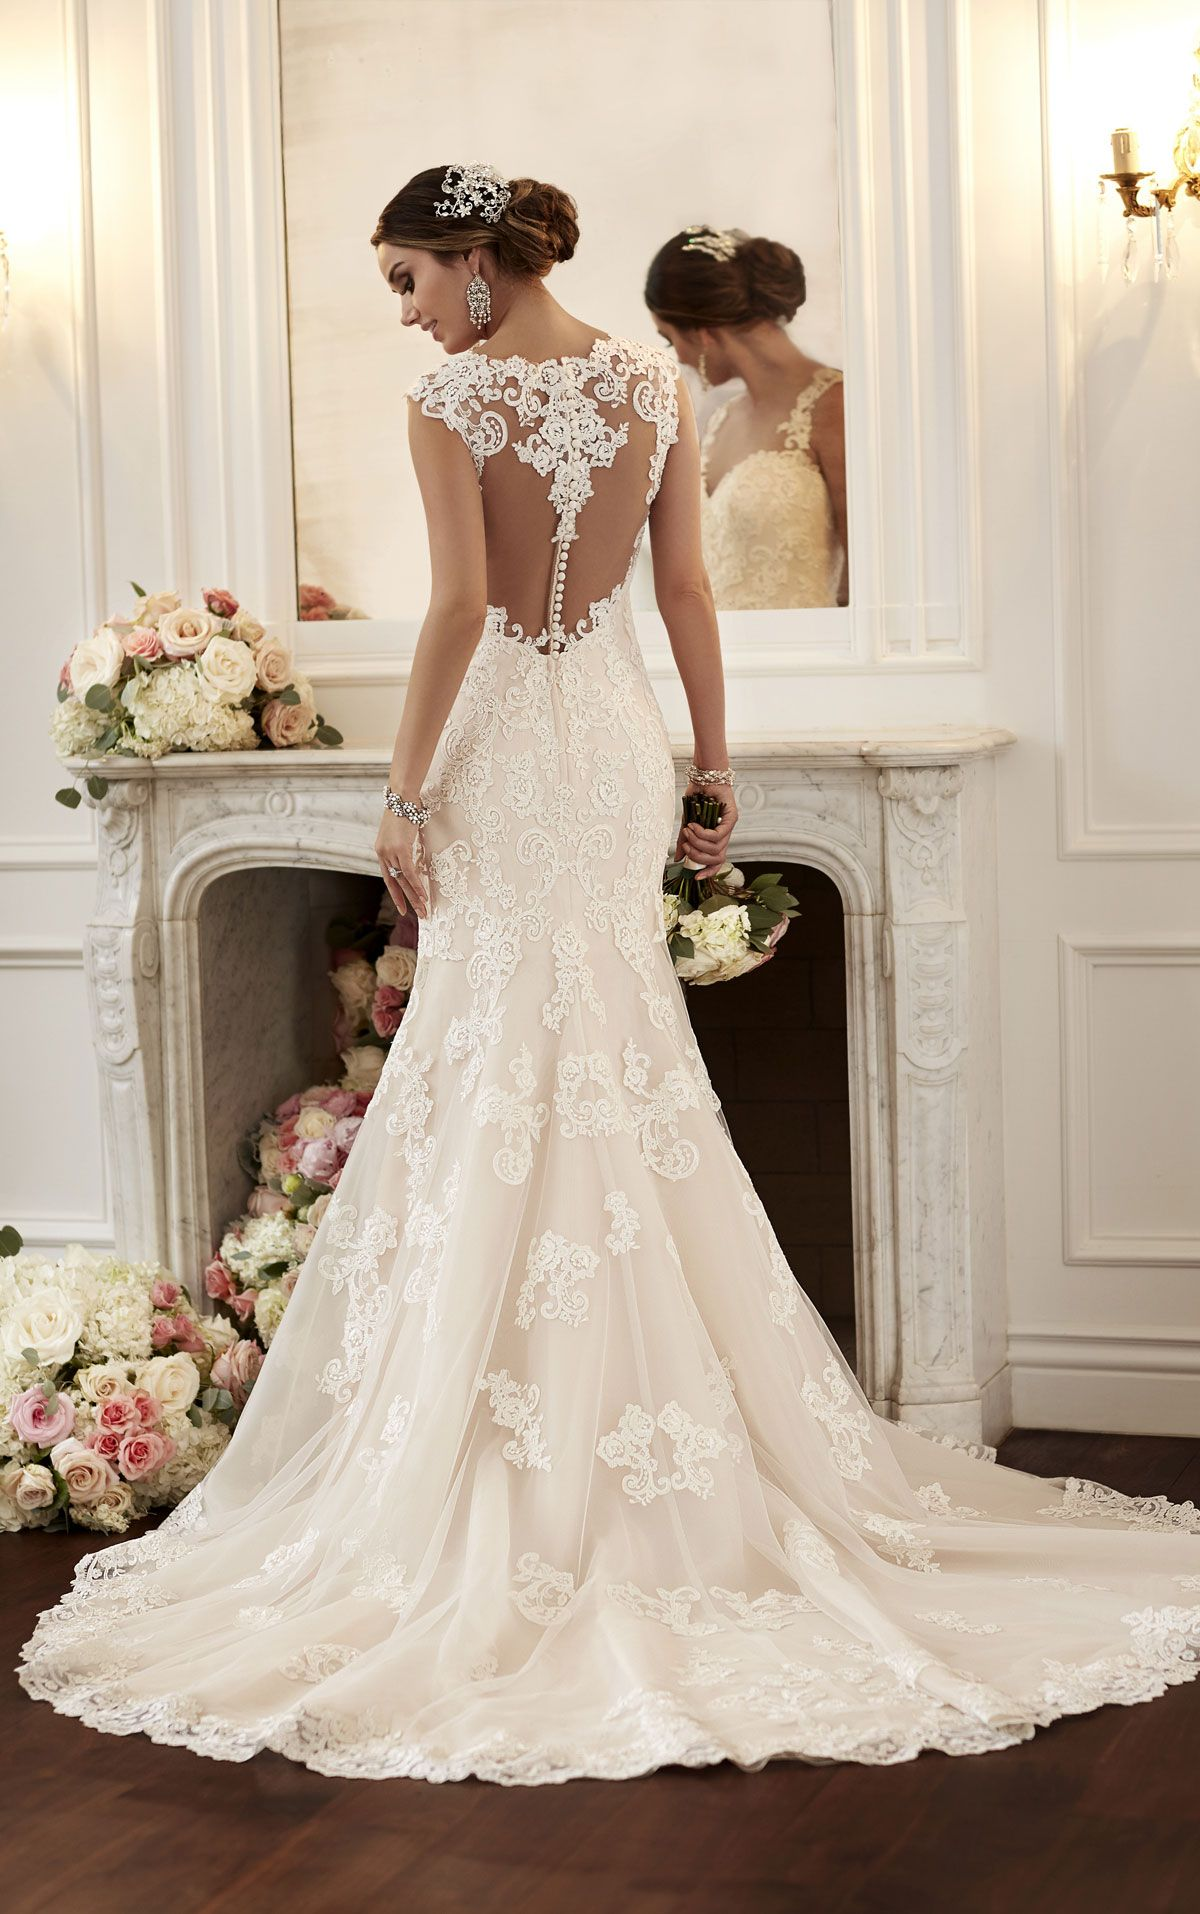 Stella York Wedding Dress With Perfectly Framing Lace Shoulder Straps The Racer Back Detailing Will Make Your Exit Amazing